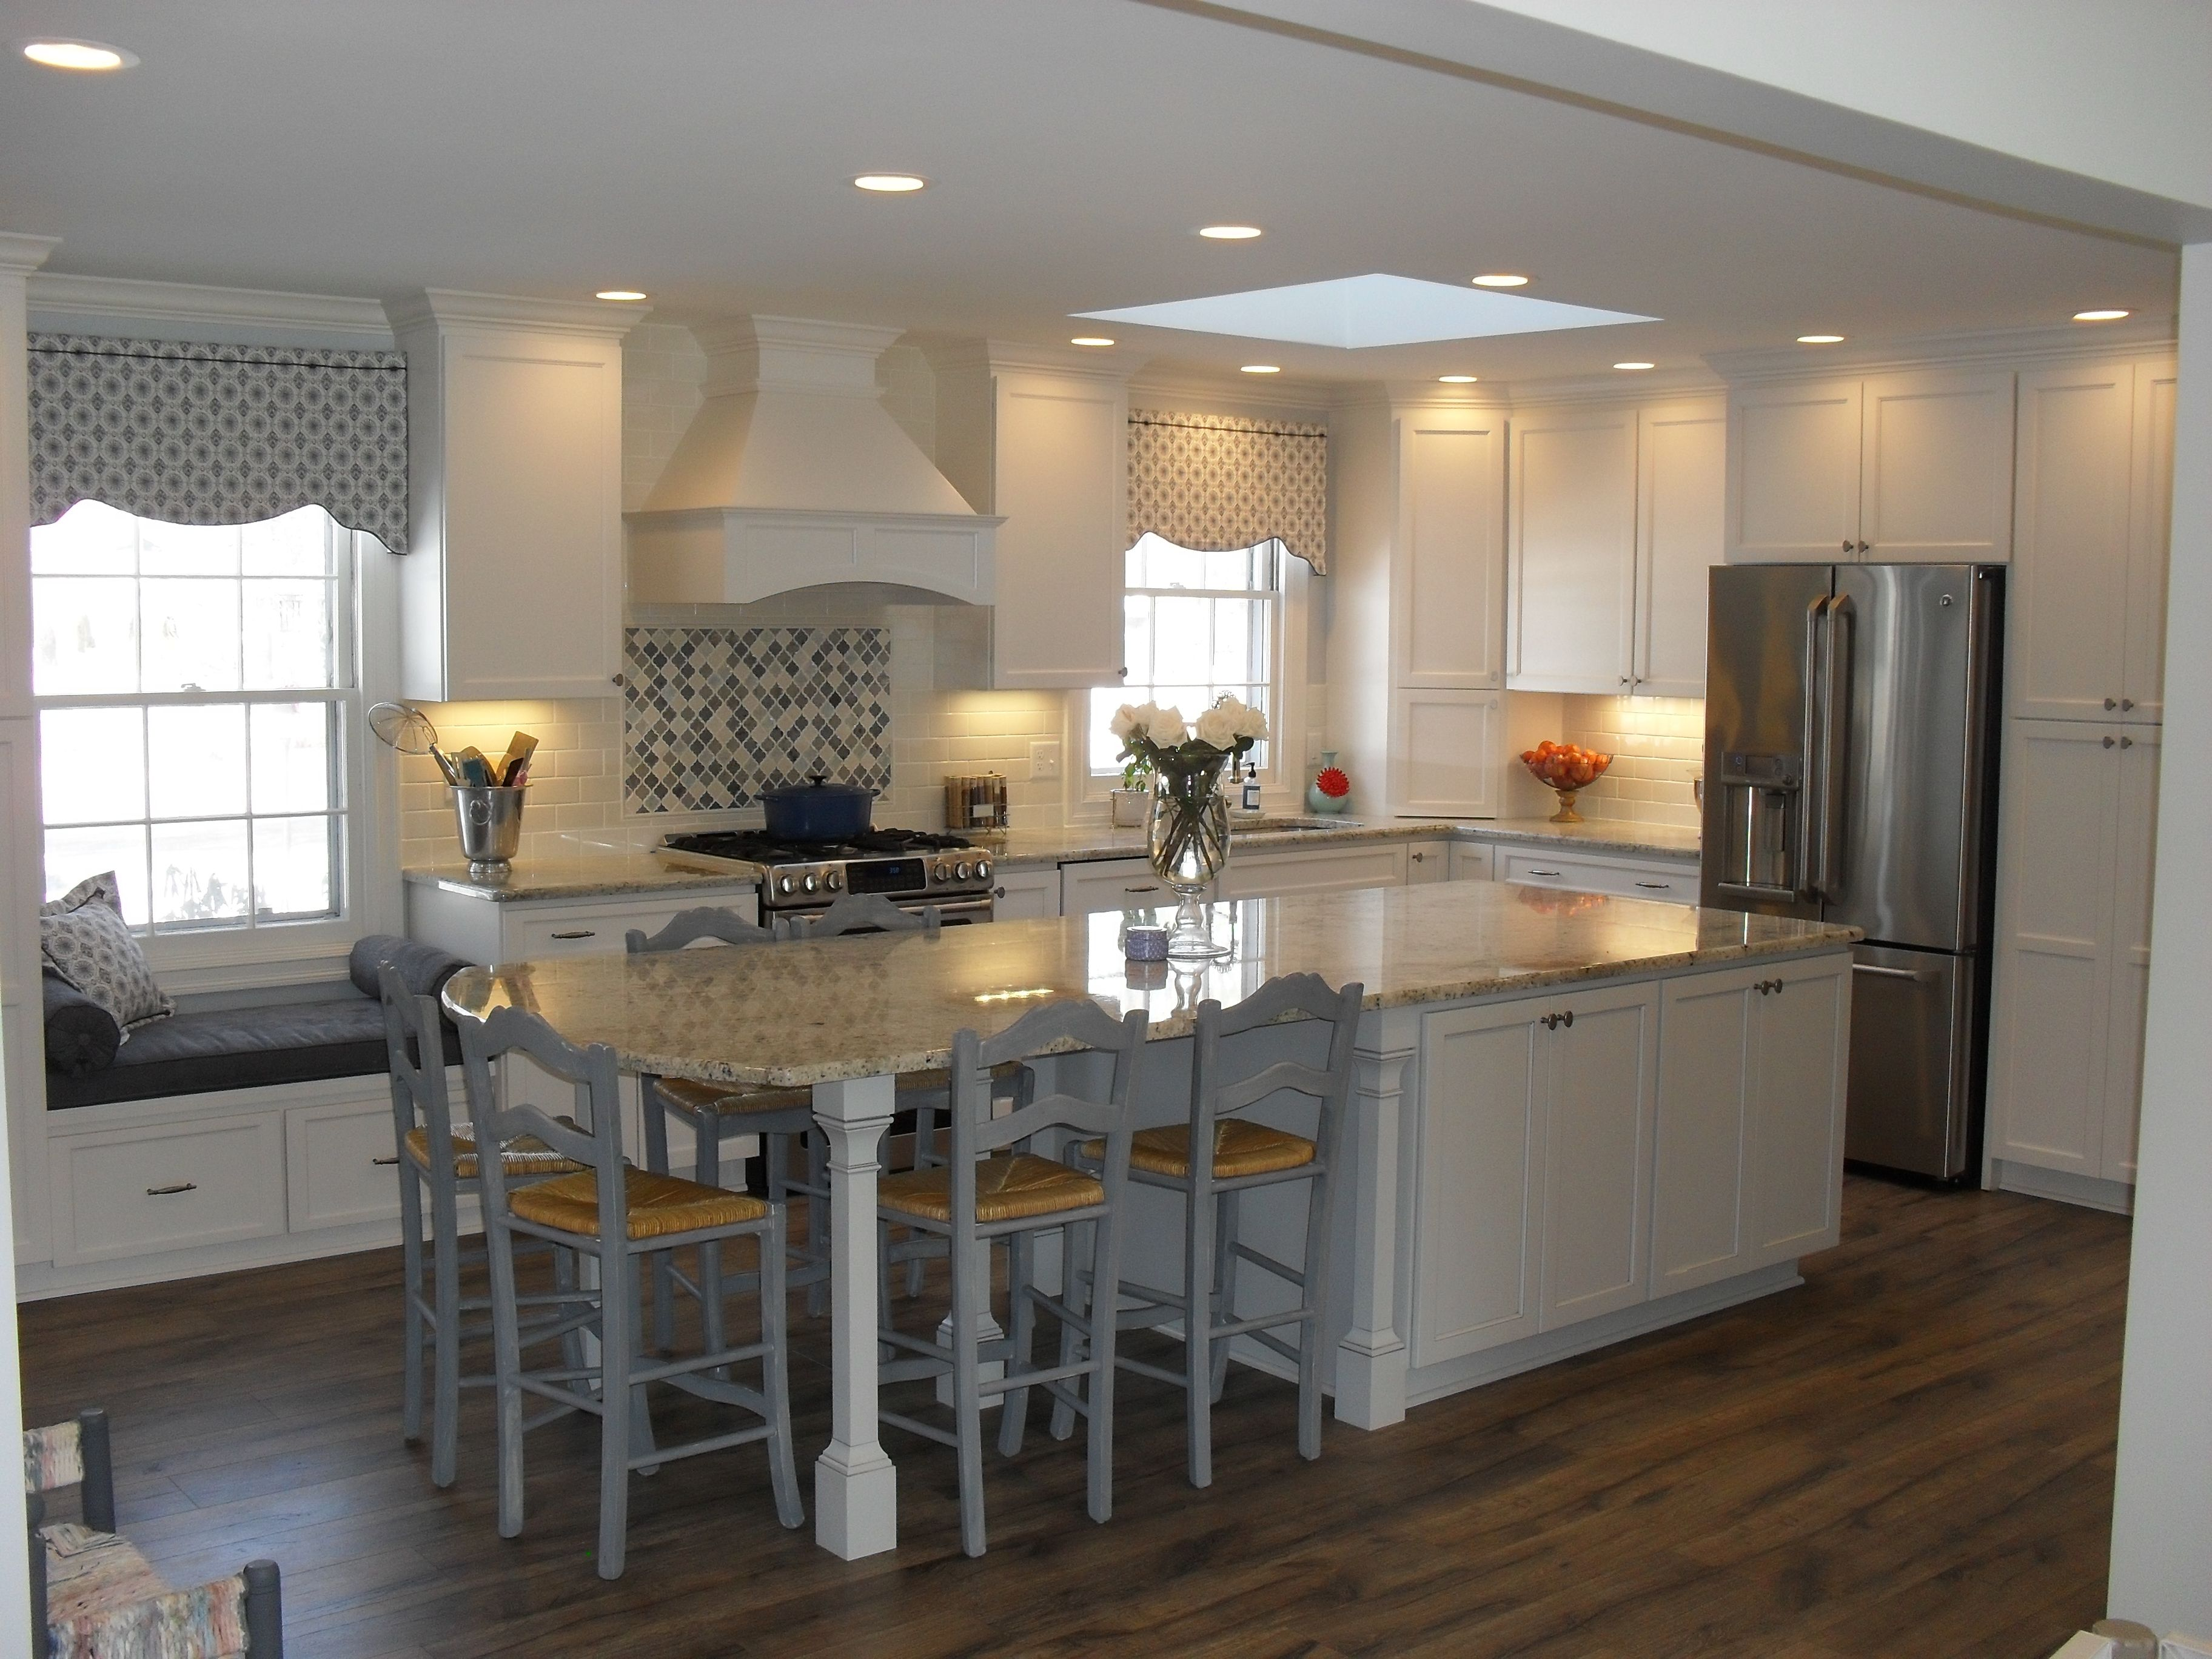 This Is A Starmark Kitchen I Designed In East Lansing Mi Kitchen Design Kitchen Cabinetry Kitchen Interior